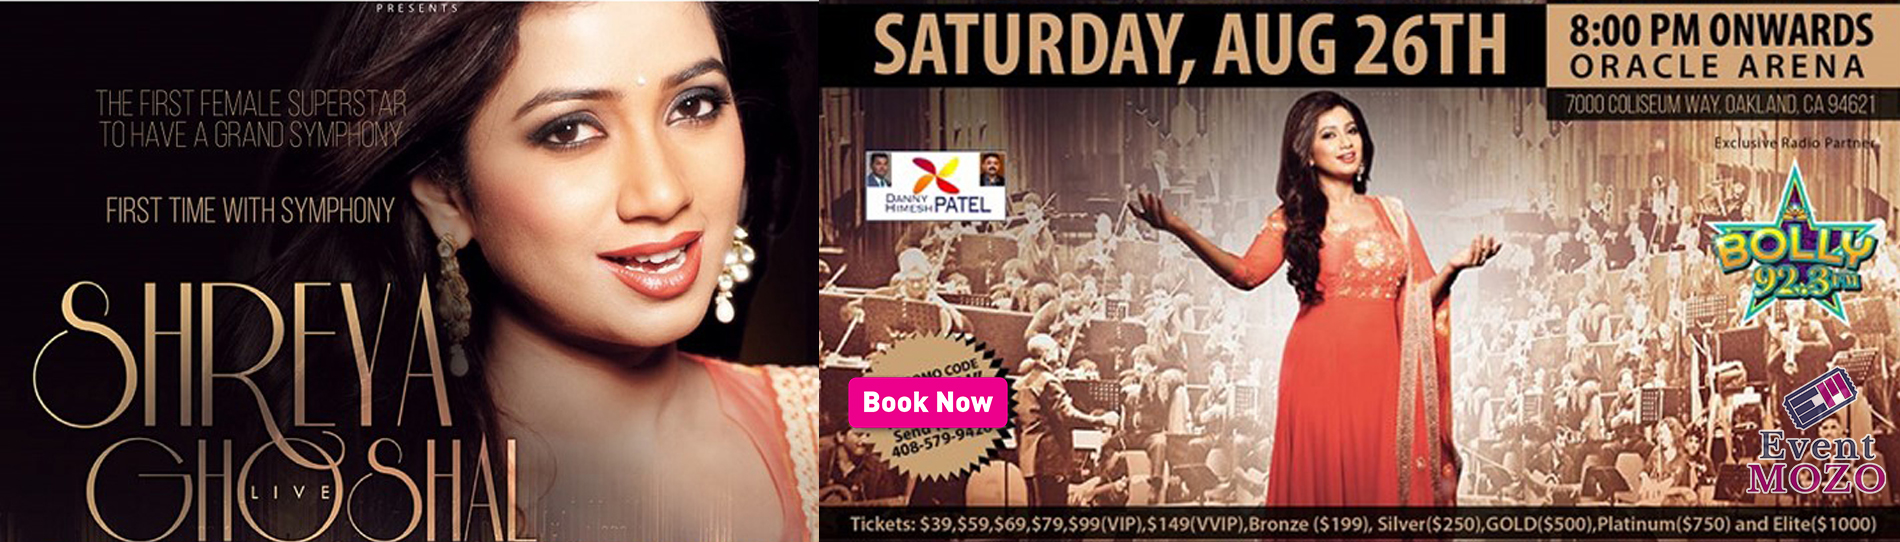 EventMozo Shreya Ghoshal Live In Concert with Grand Symphony - Bay Area